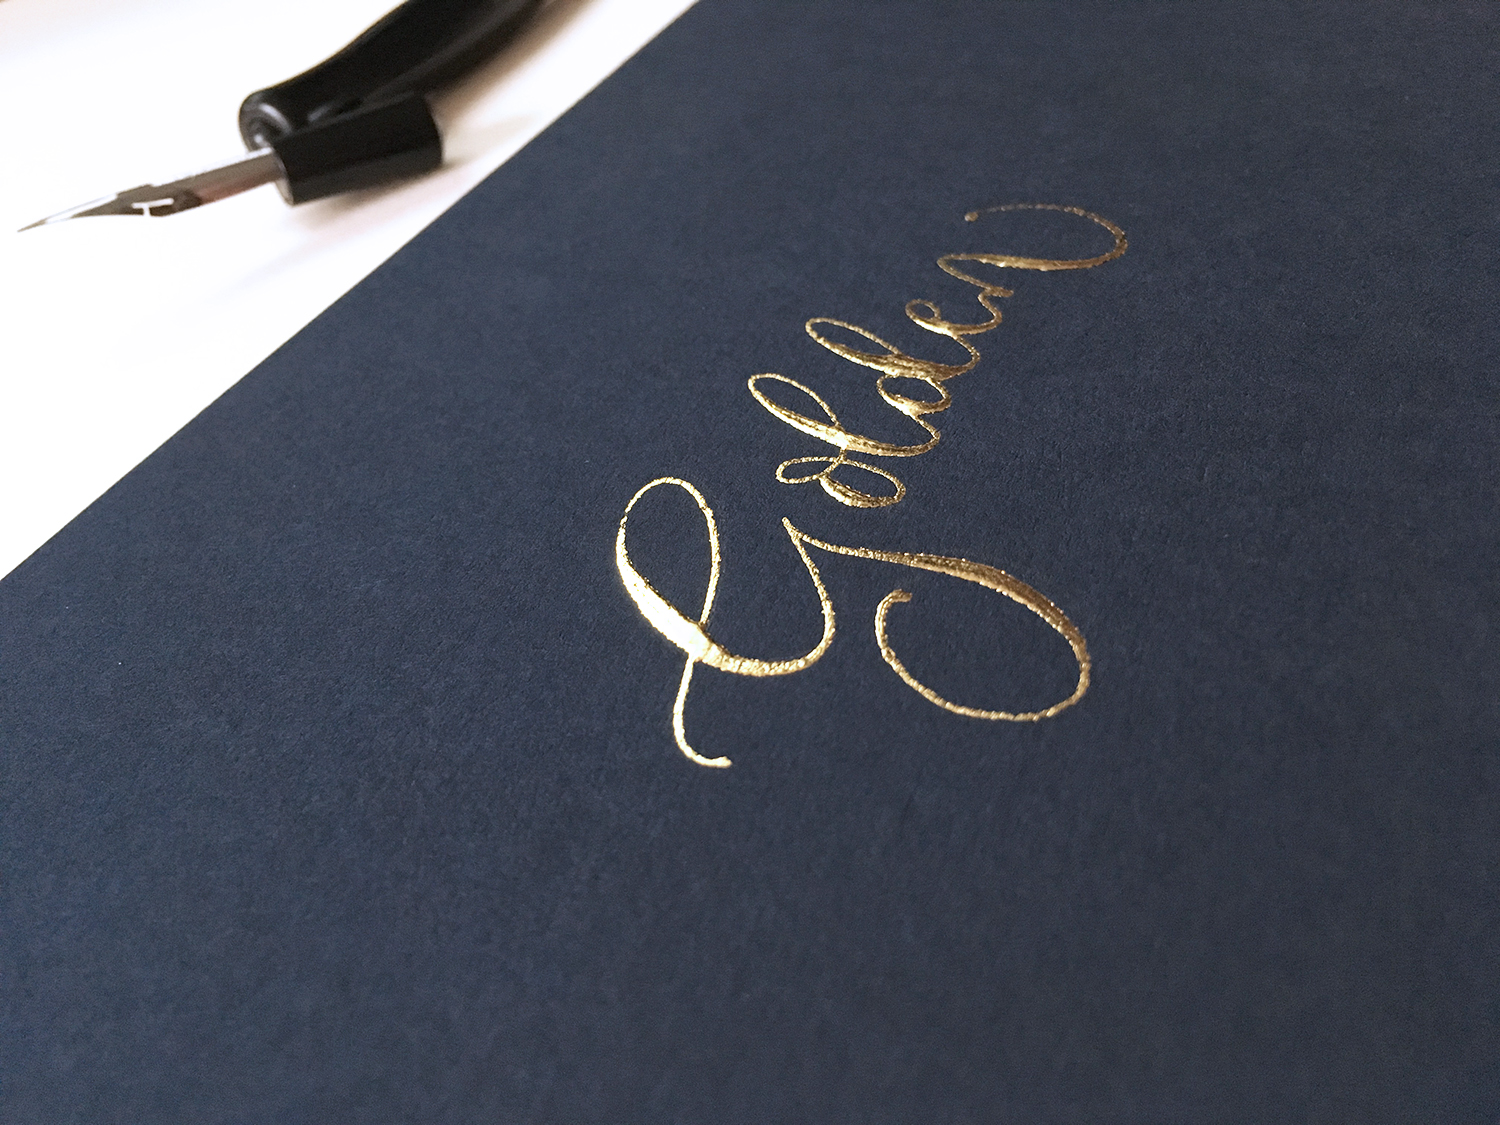 How to write your name in 22 carat gold calligraphy